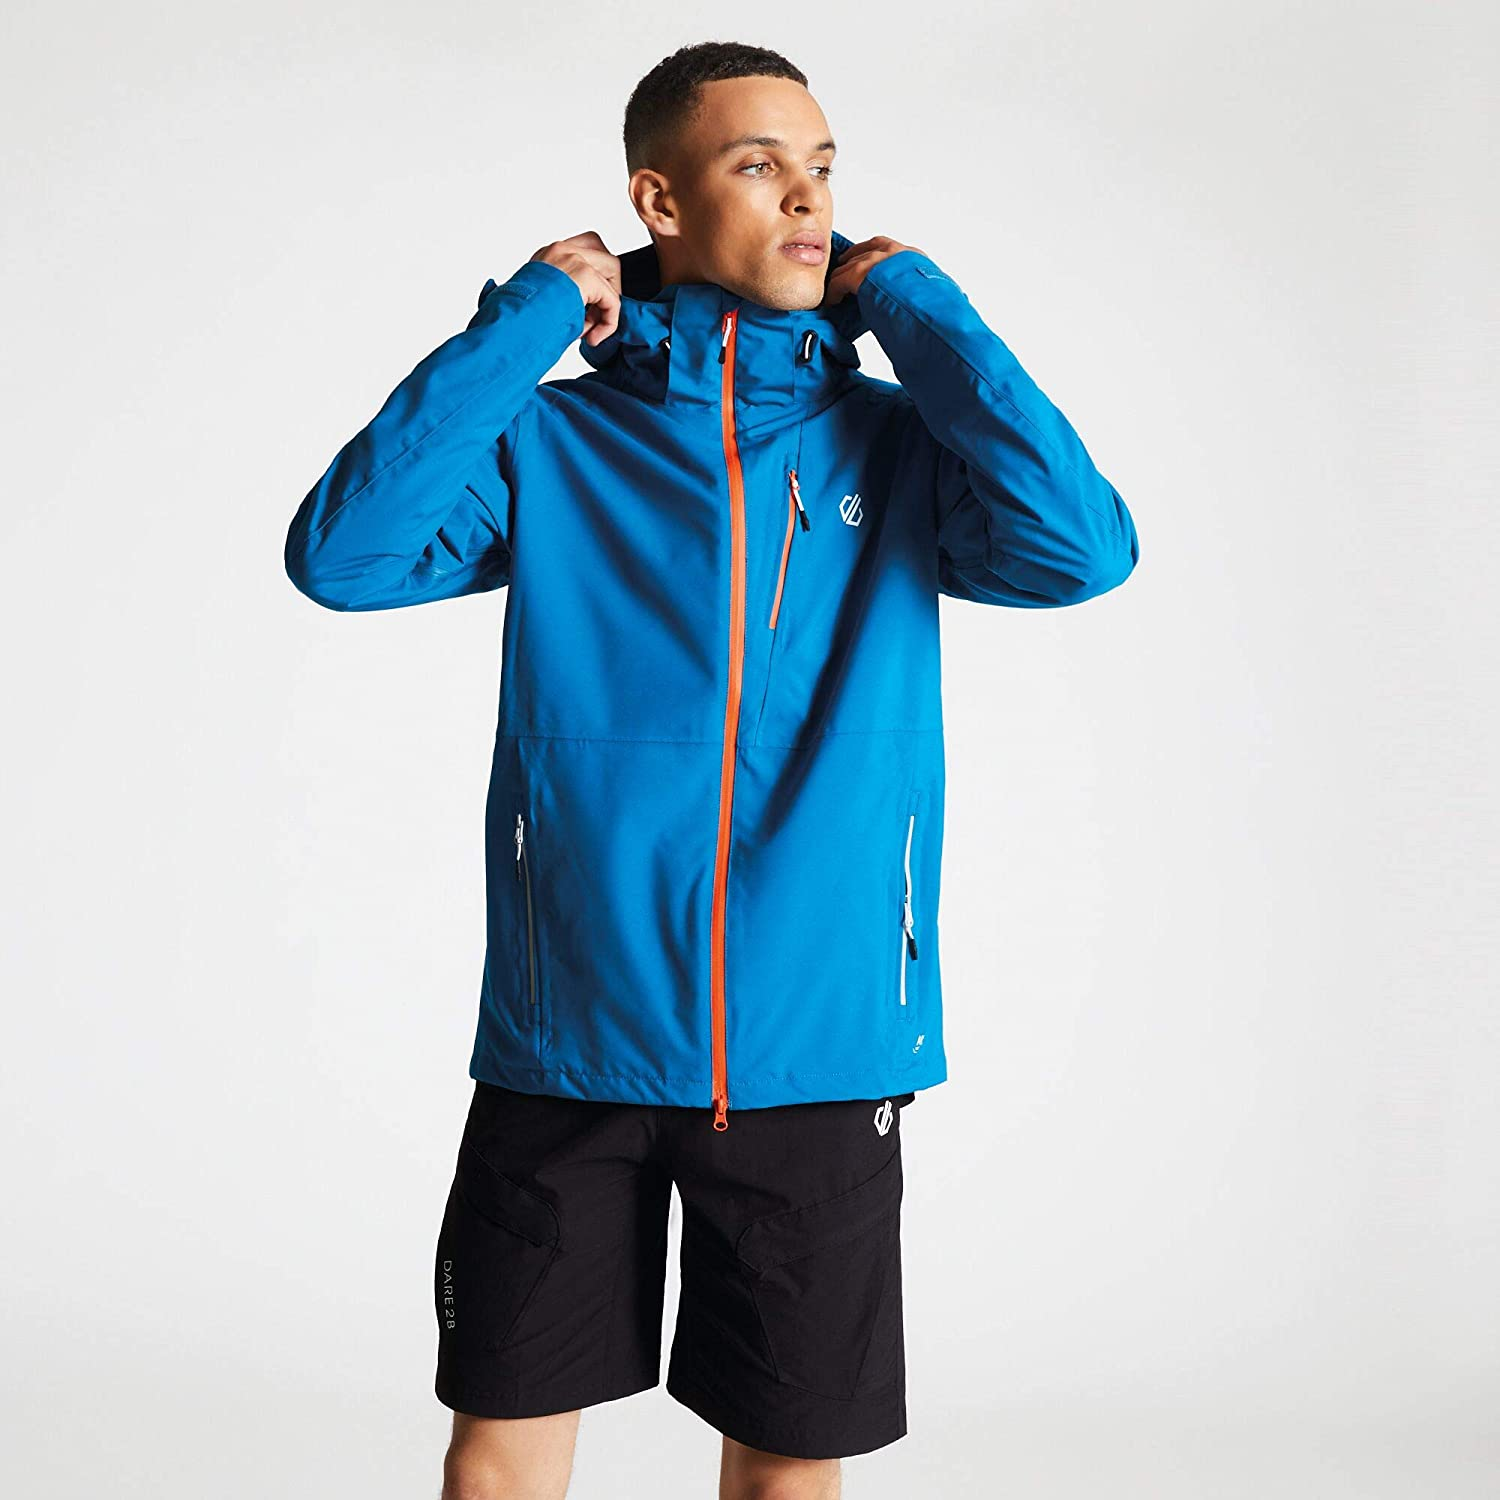 Dare2b Diluent Waterproof Breathable Taped Seams Detachable Hood Stretch 2 Way Zip Jacket Jackets Waterproof Shell Hombre